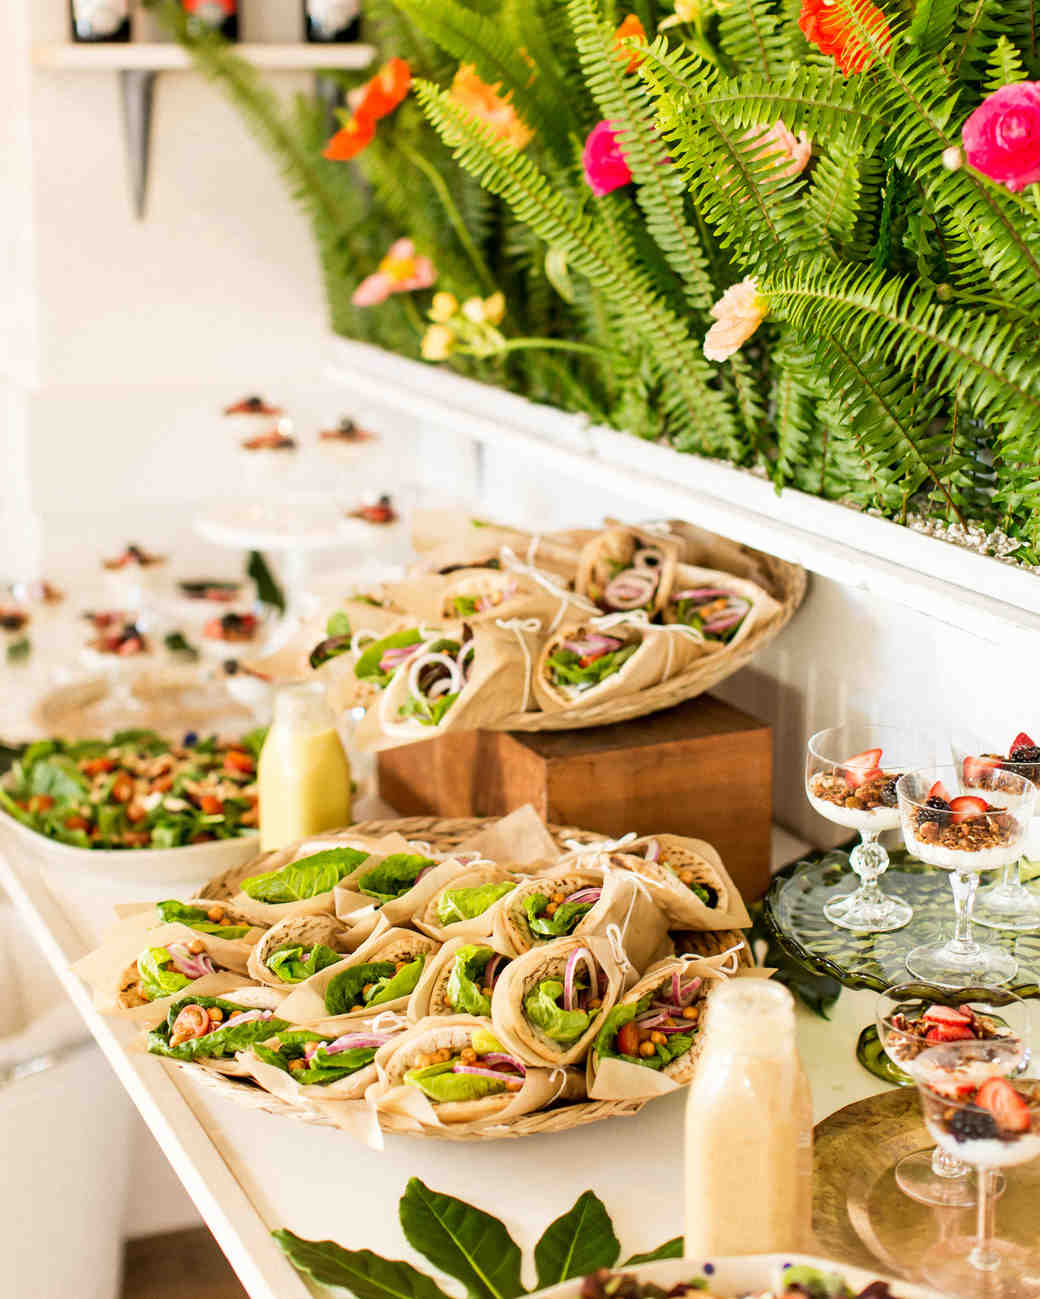 Wedding Food Buffet Menus: 20 Delicious Bites To Serve At Your Bridal Shower